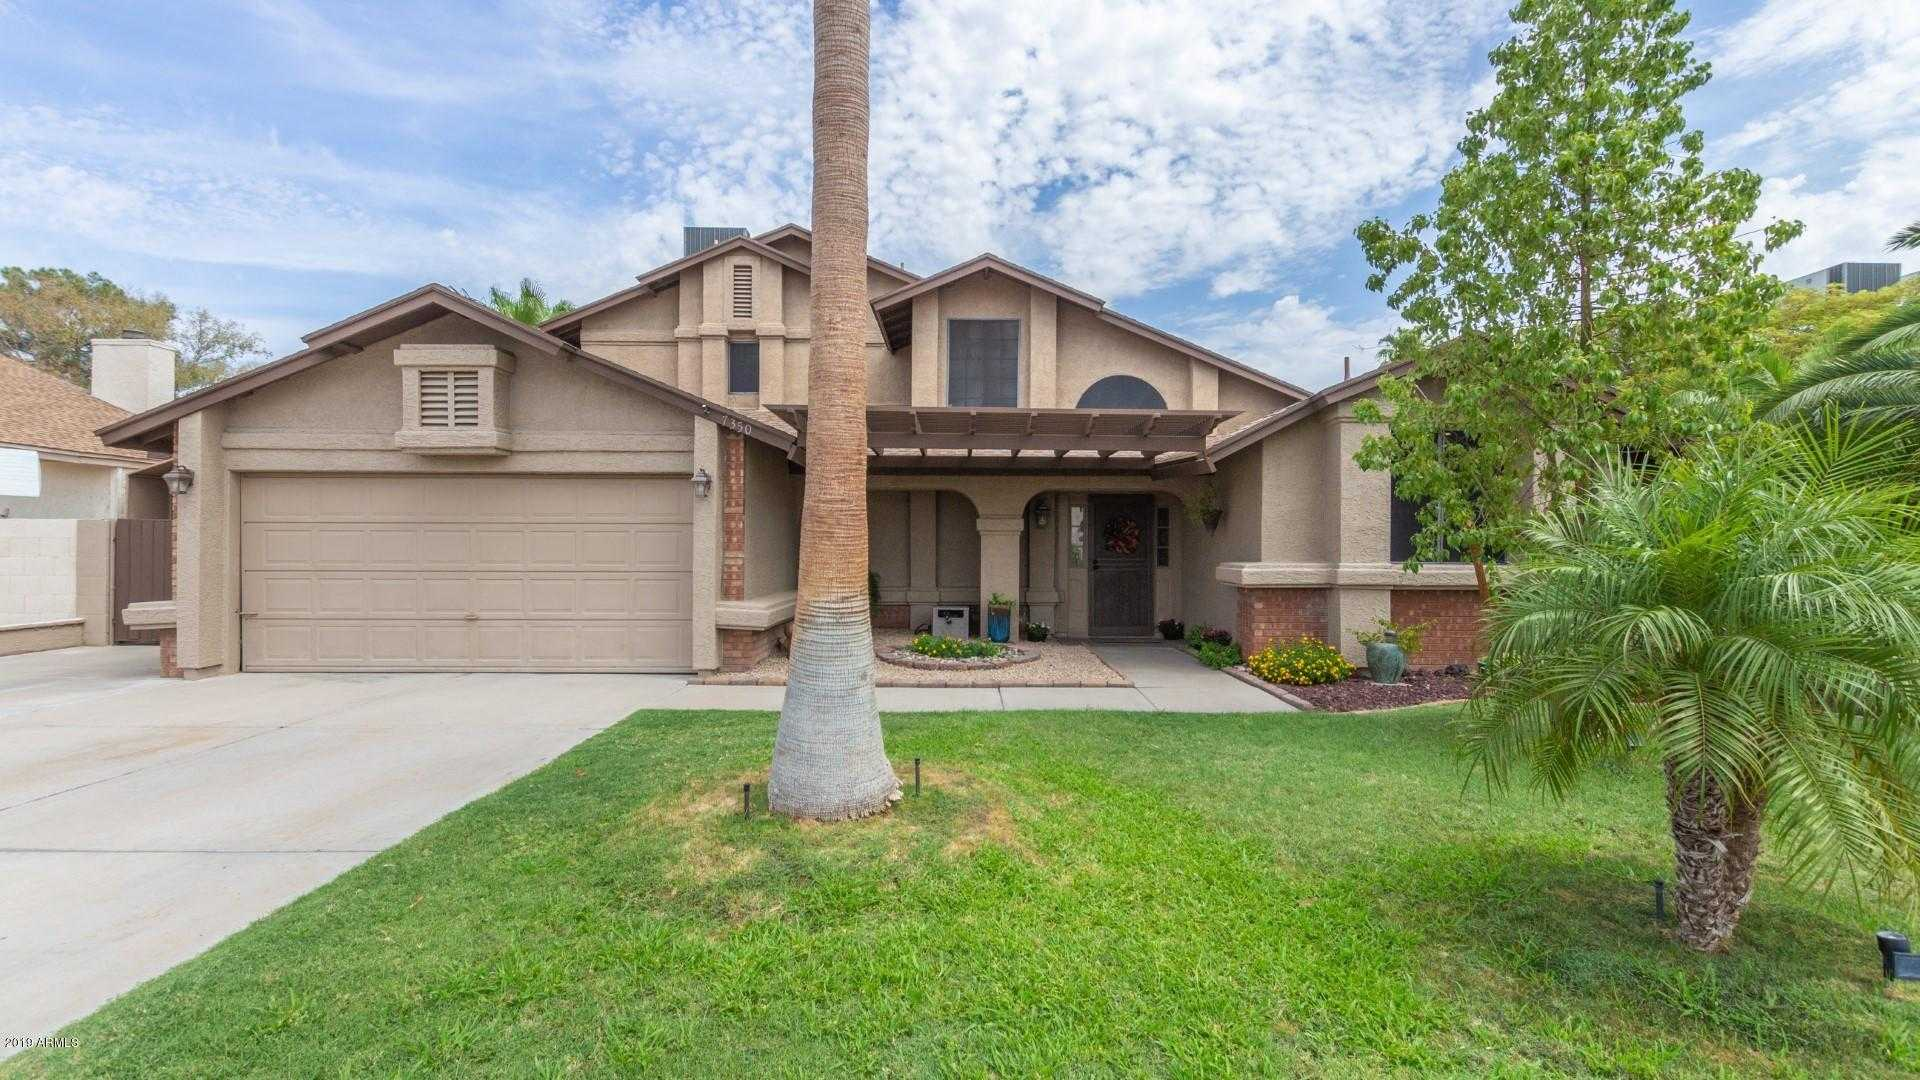 $300,000 - 4Br/2Ba - Home for Sale in Foxfire 2 Lot 163-210 213-374, Peoria